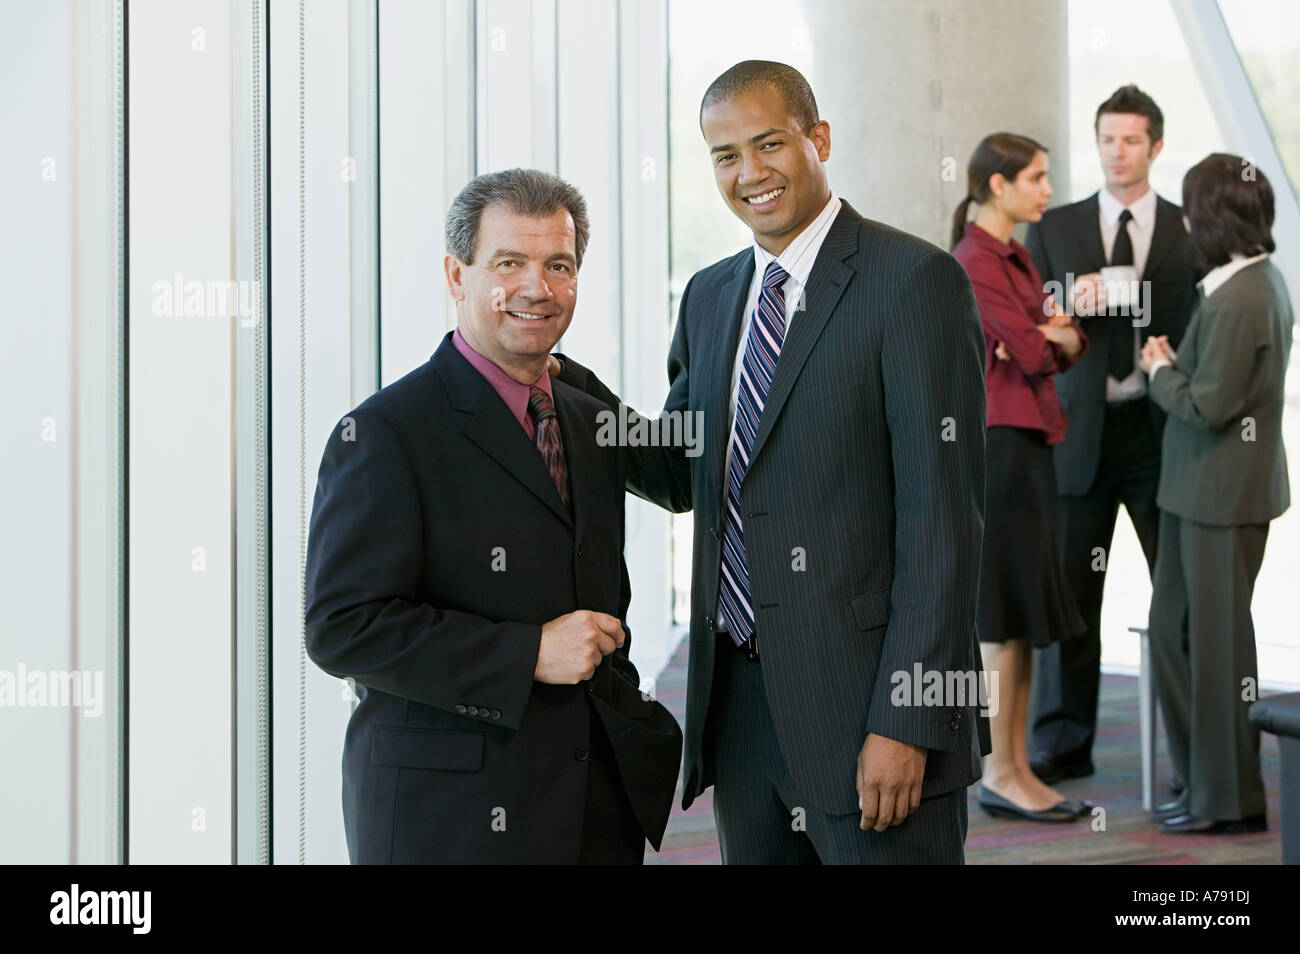 Two businessmen - Stock Image